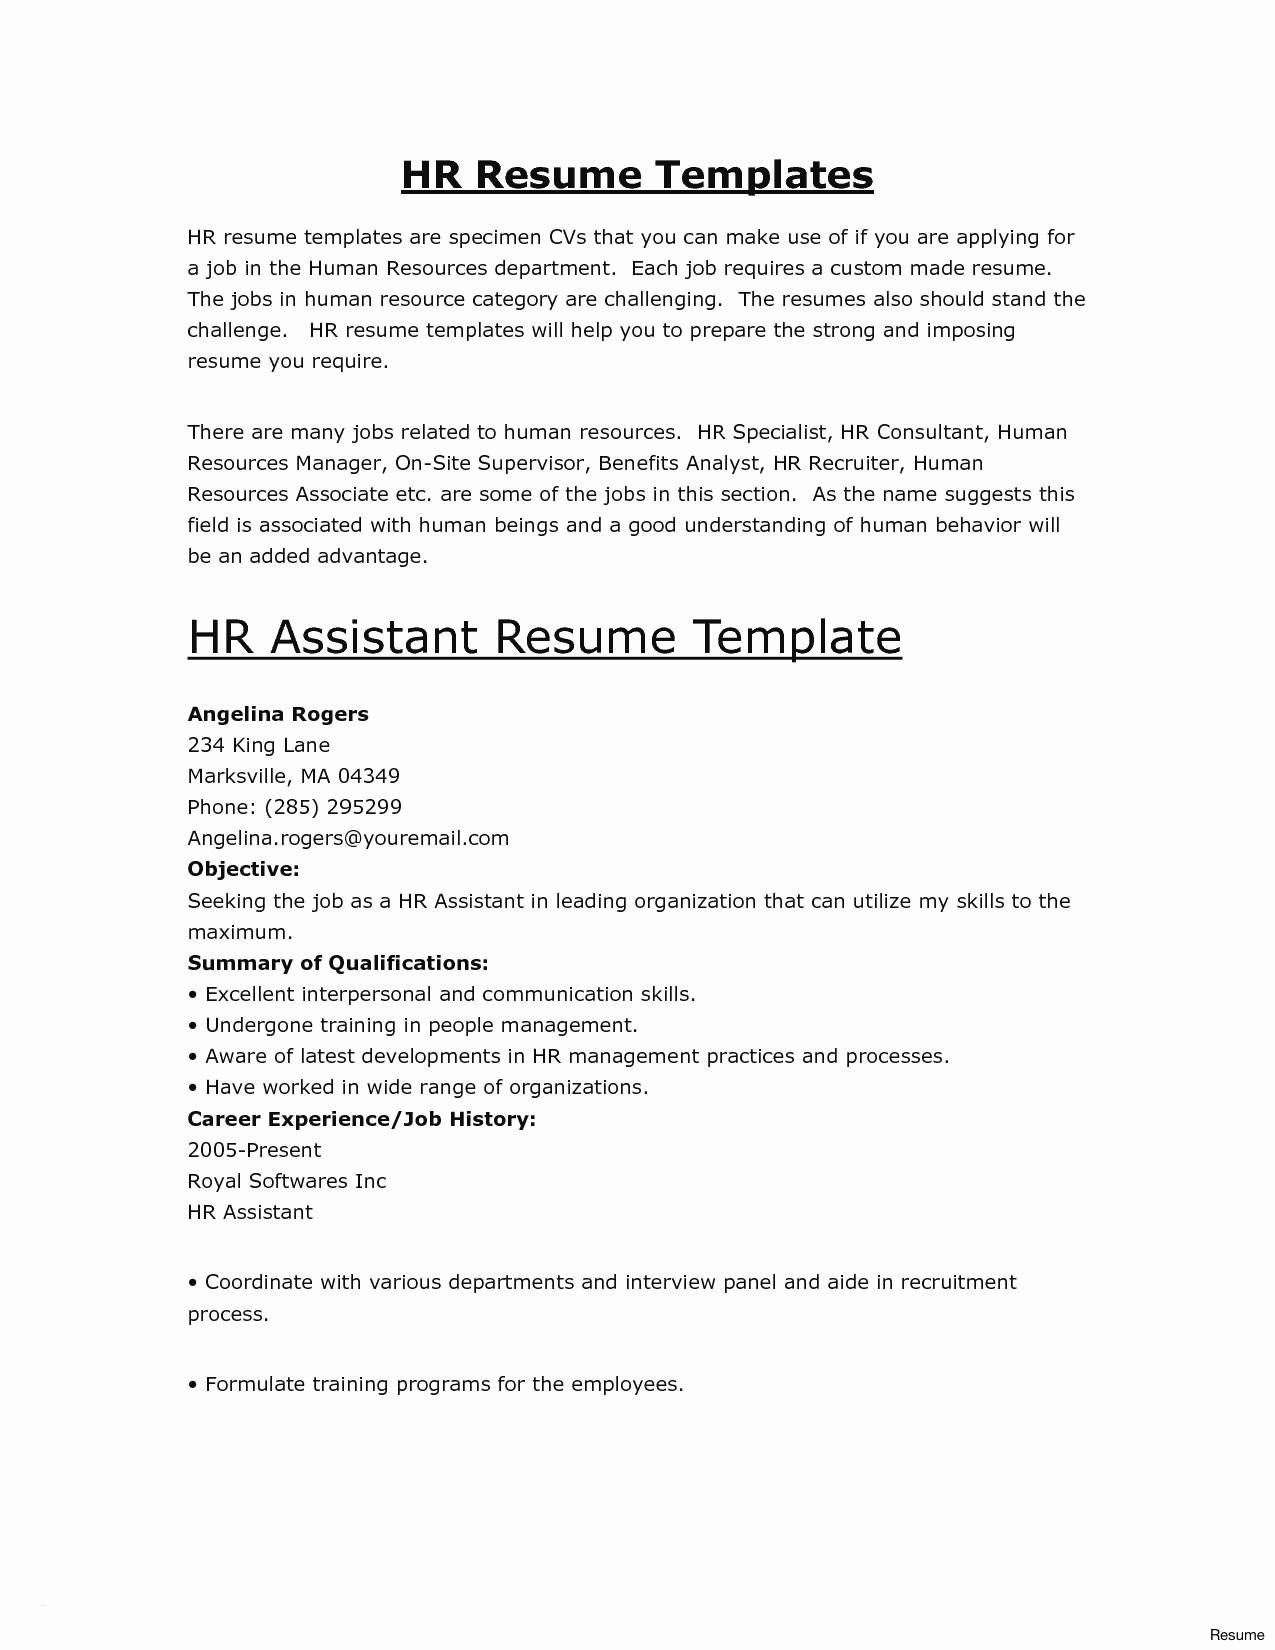 Welder Resume Objective - Welding Resume Template Best Resume Experts 2018 Welder Resume 0d